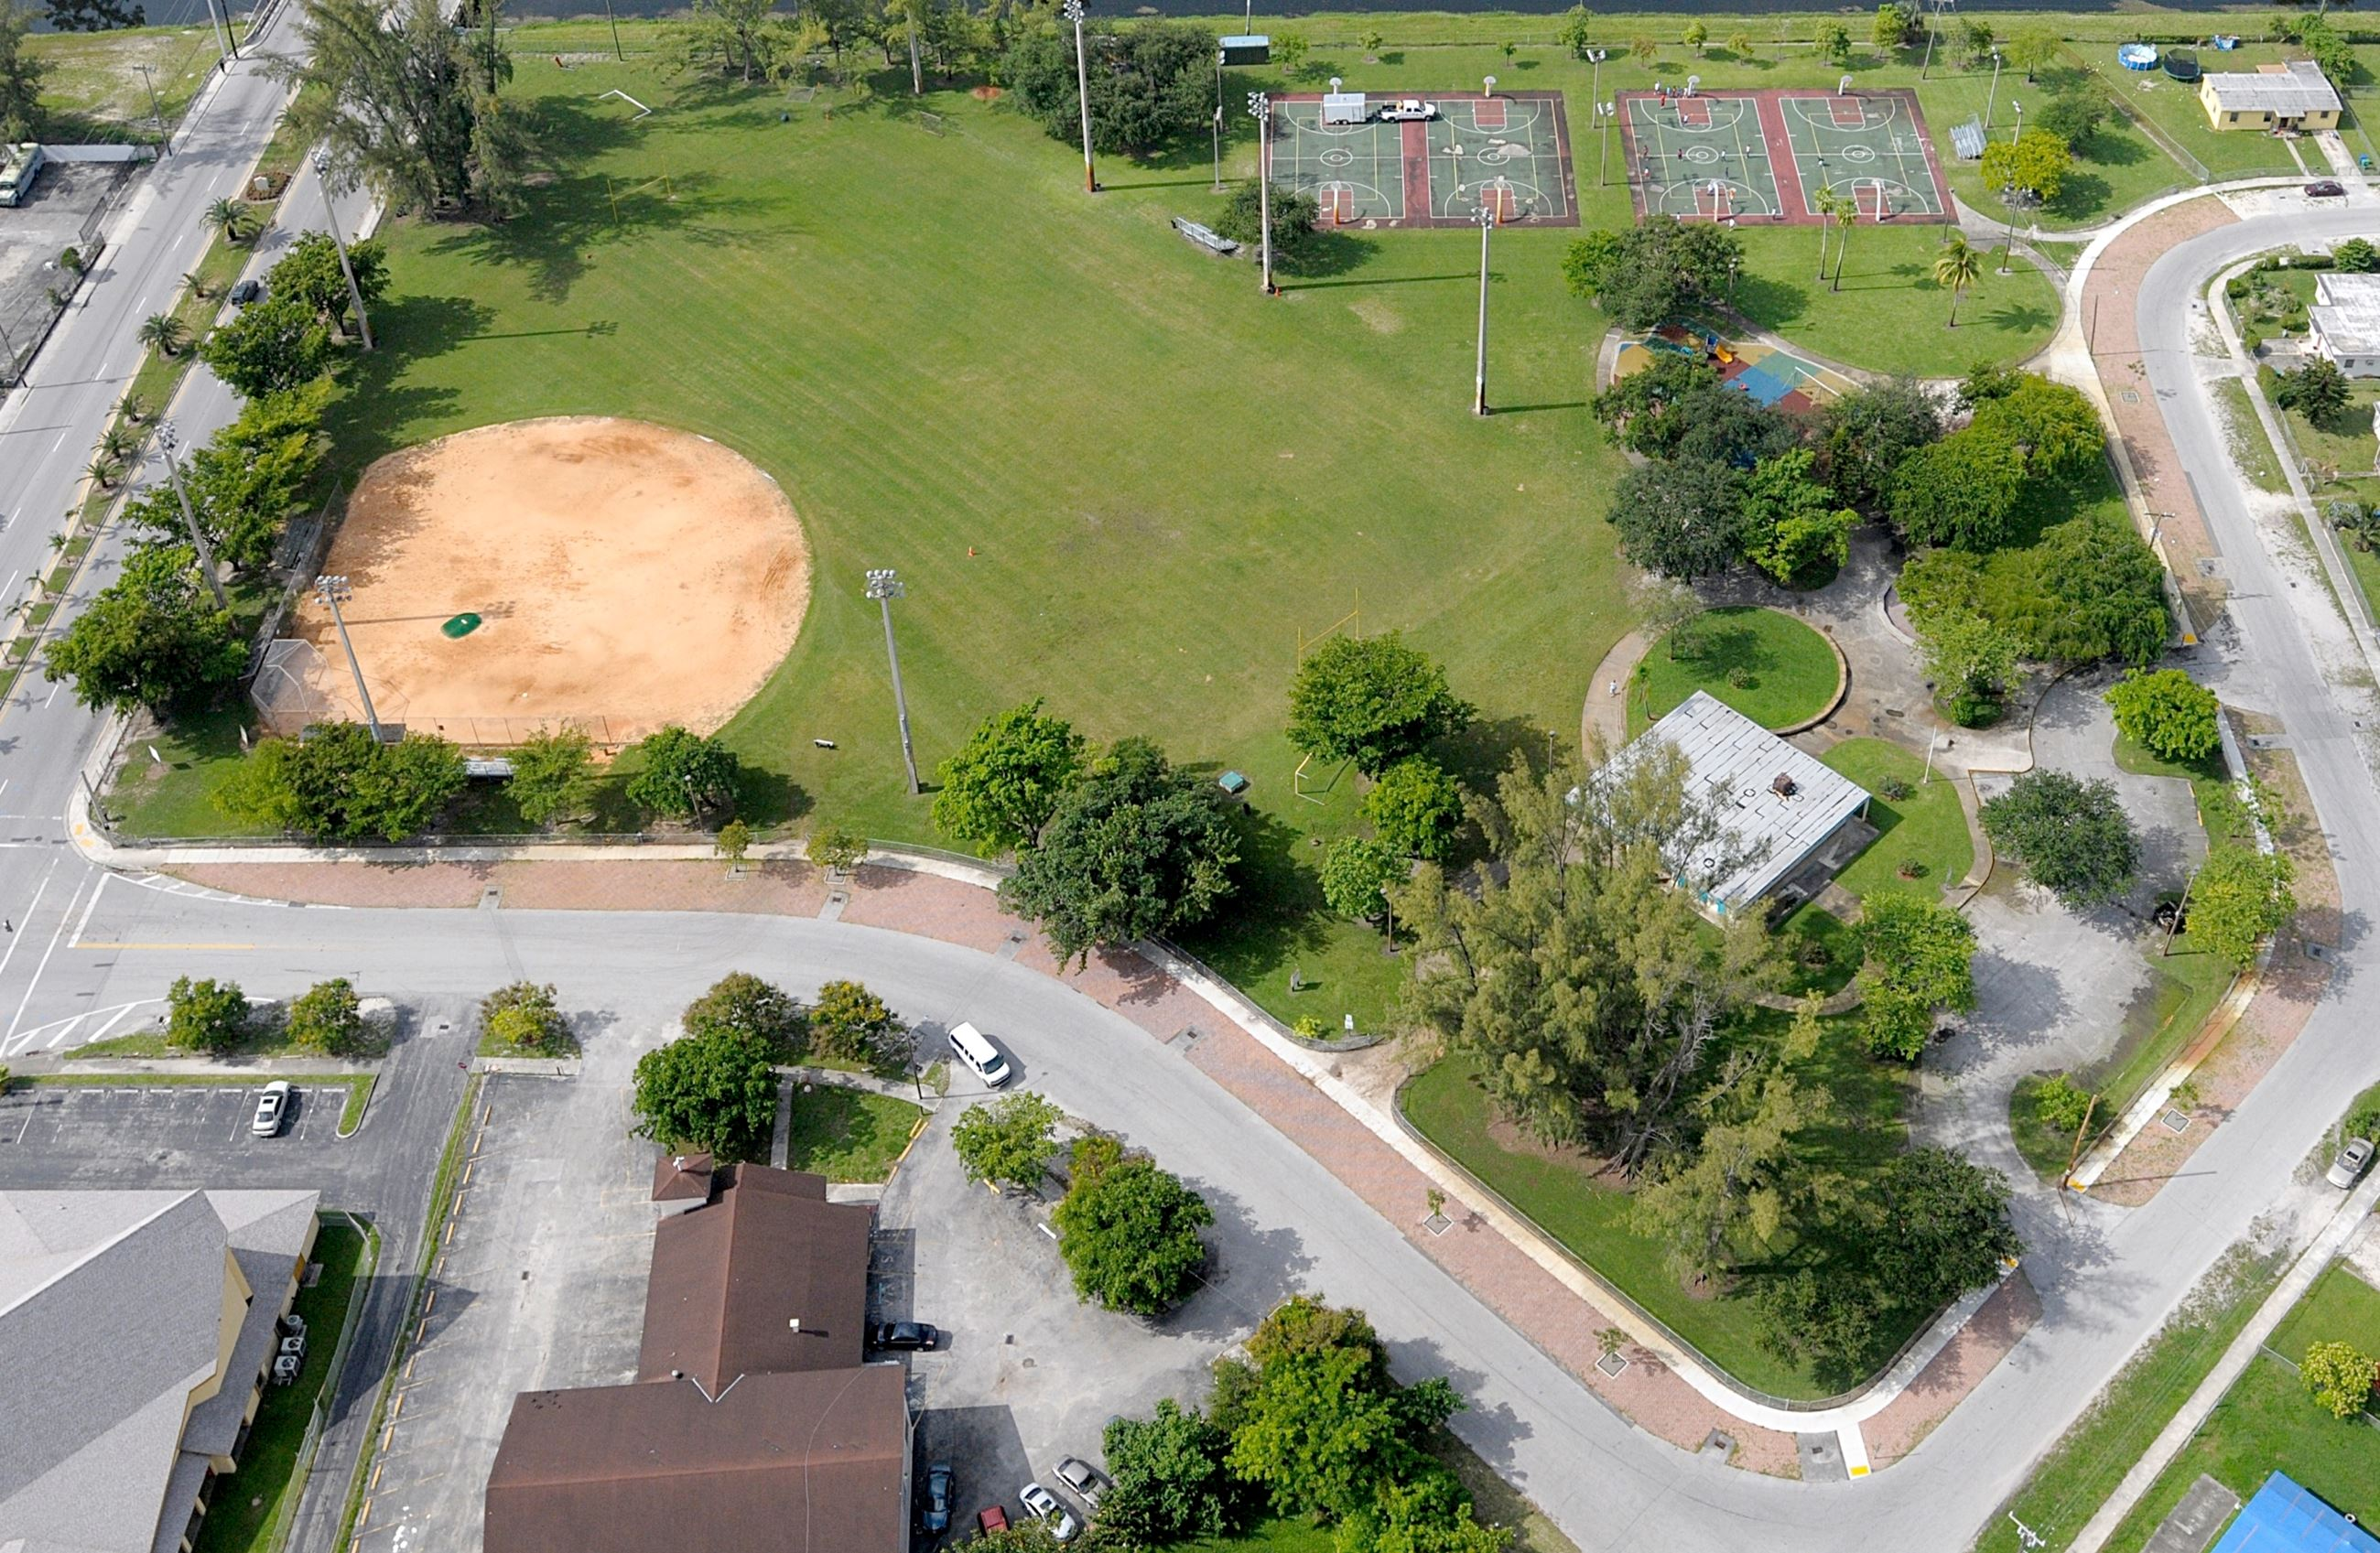 Bunche Park Aerial View